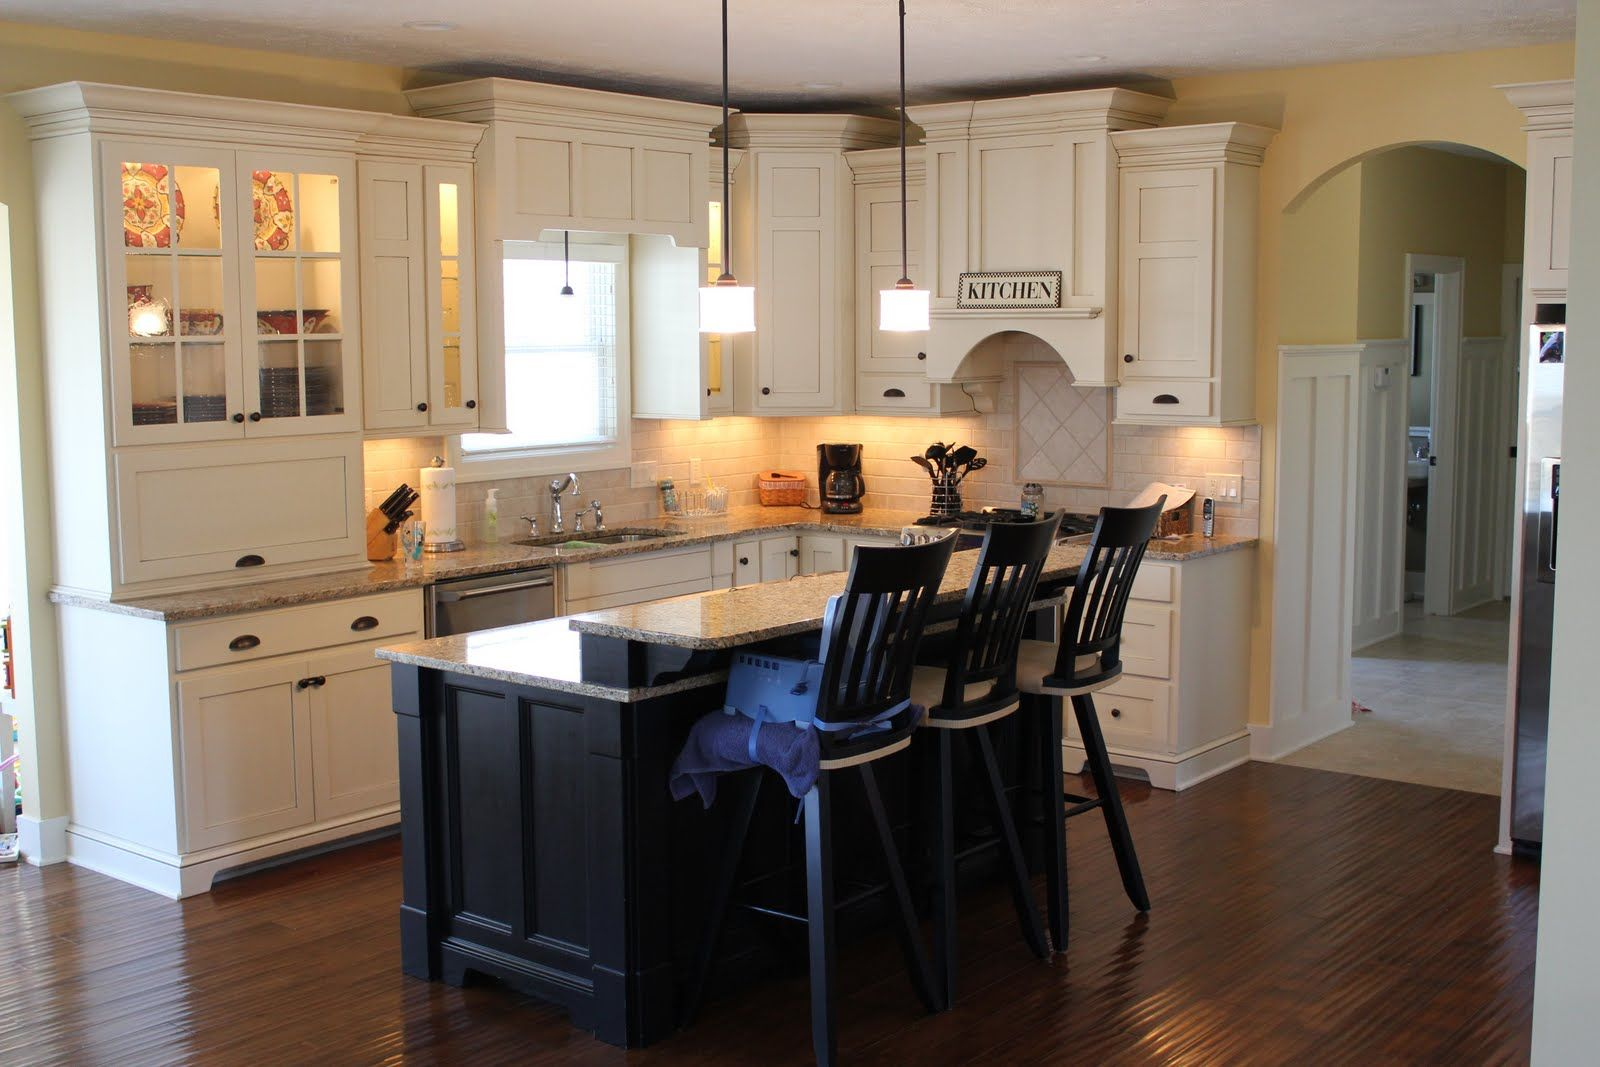 700 sq ft Design 'Friends and Family Favorite Spaces